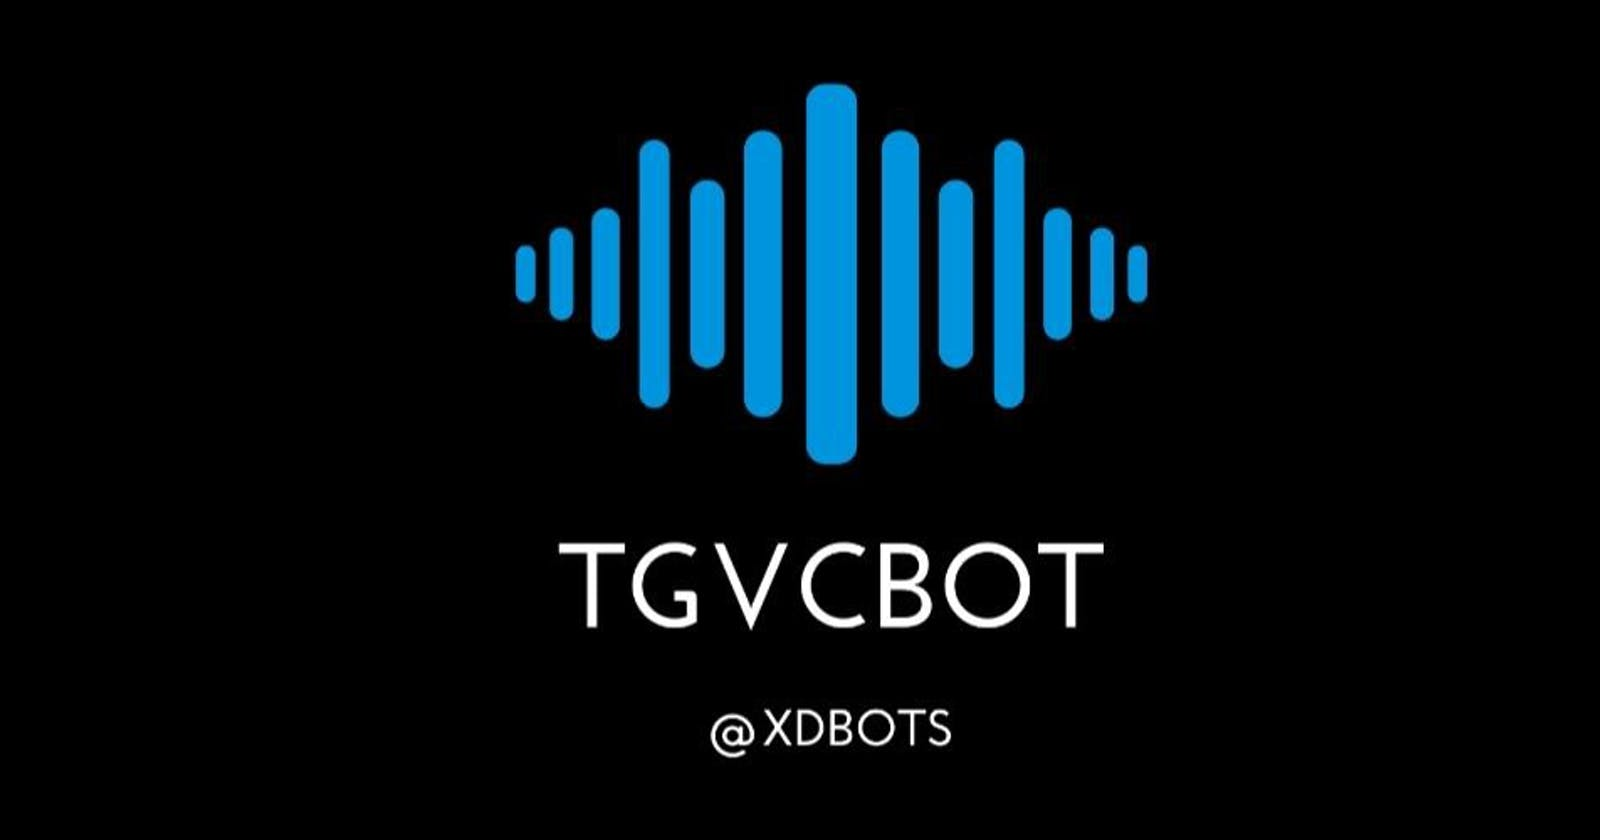 How to Deploy TGVCBot in a Ubuntu VPS